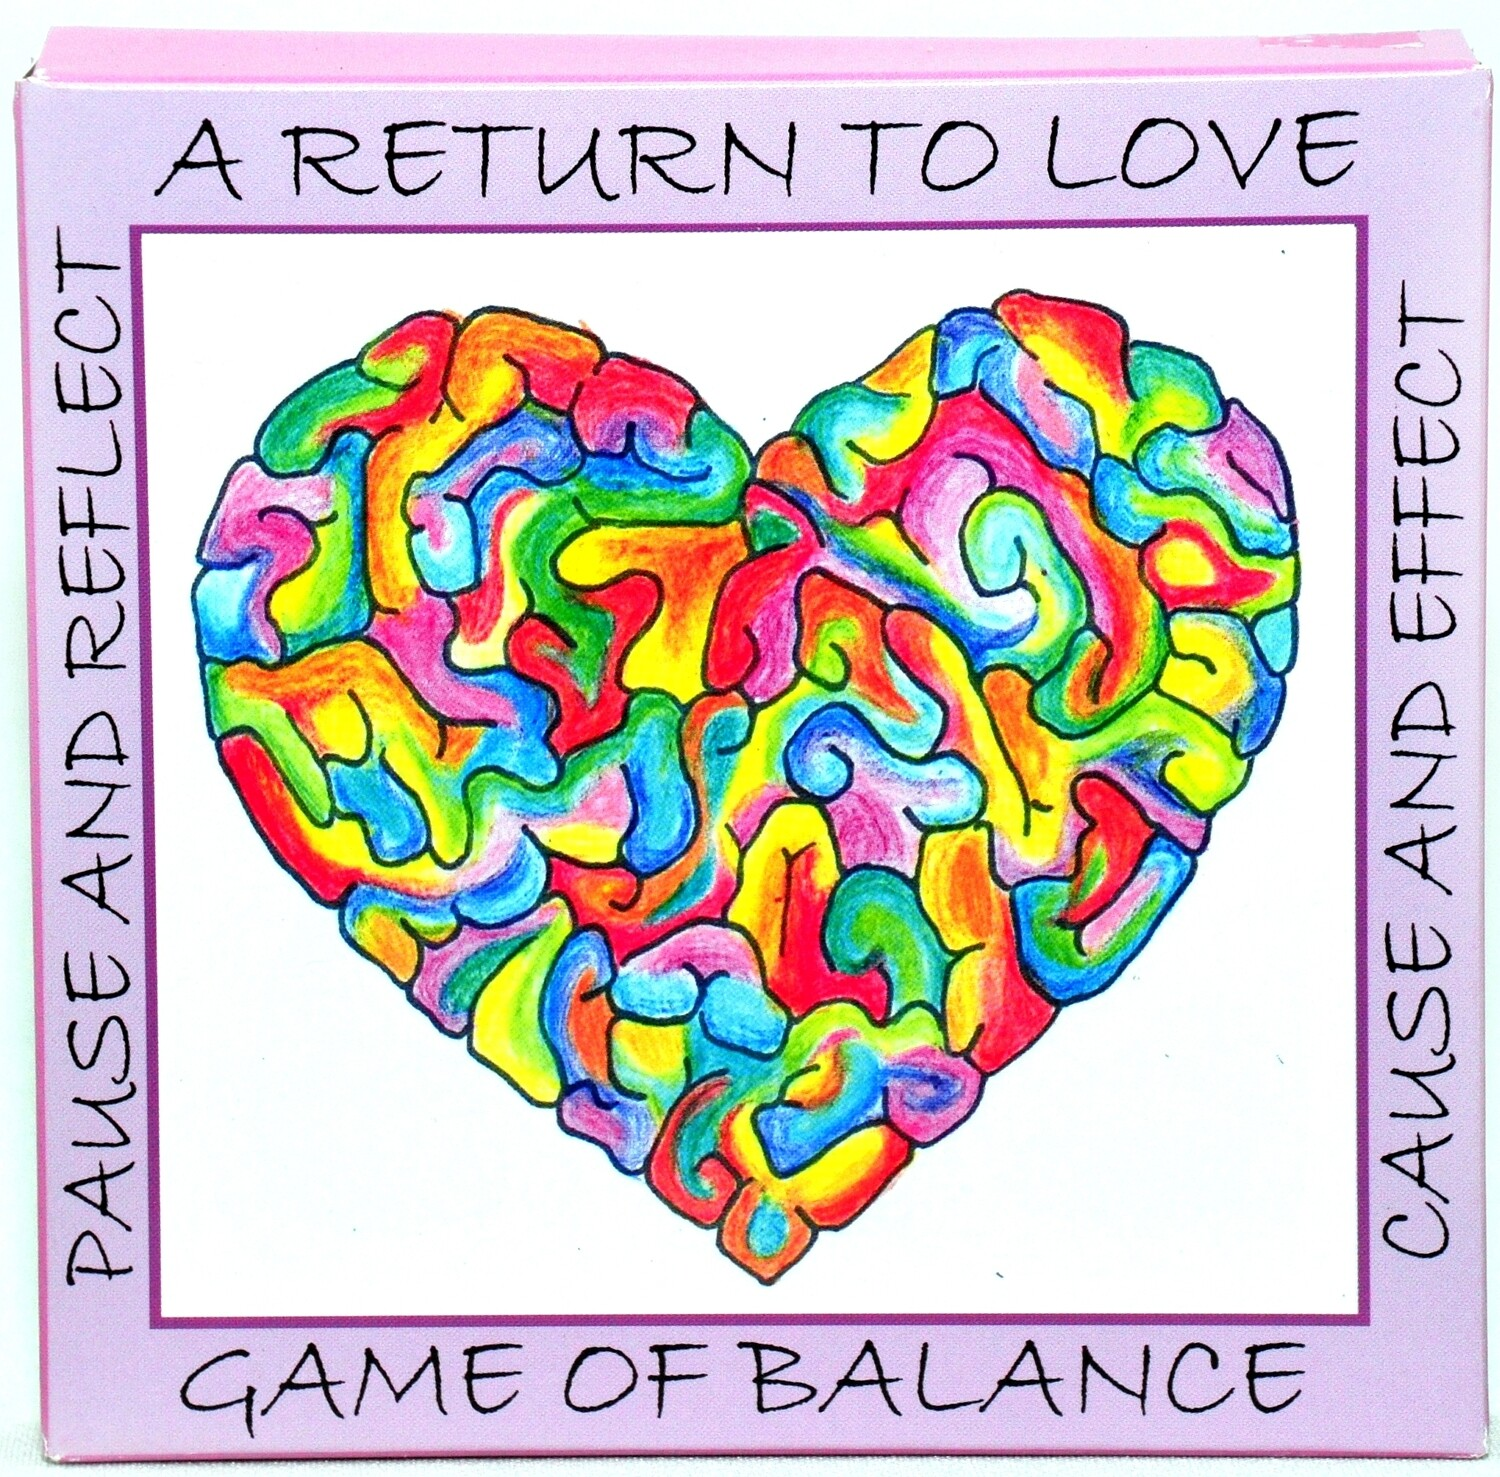 A Return to Love Game